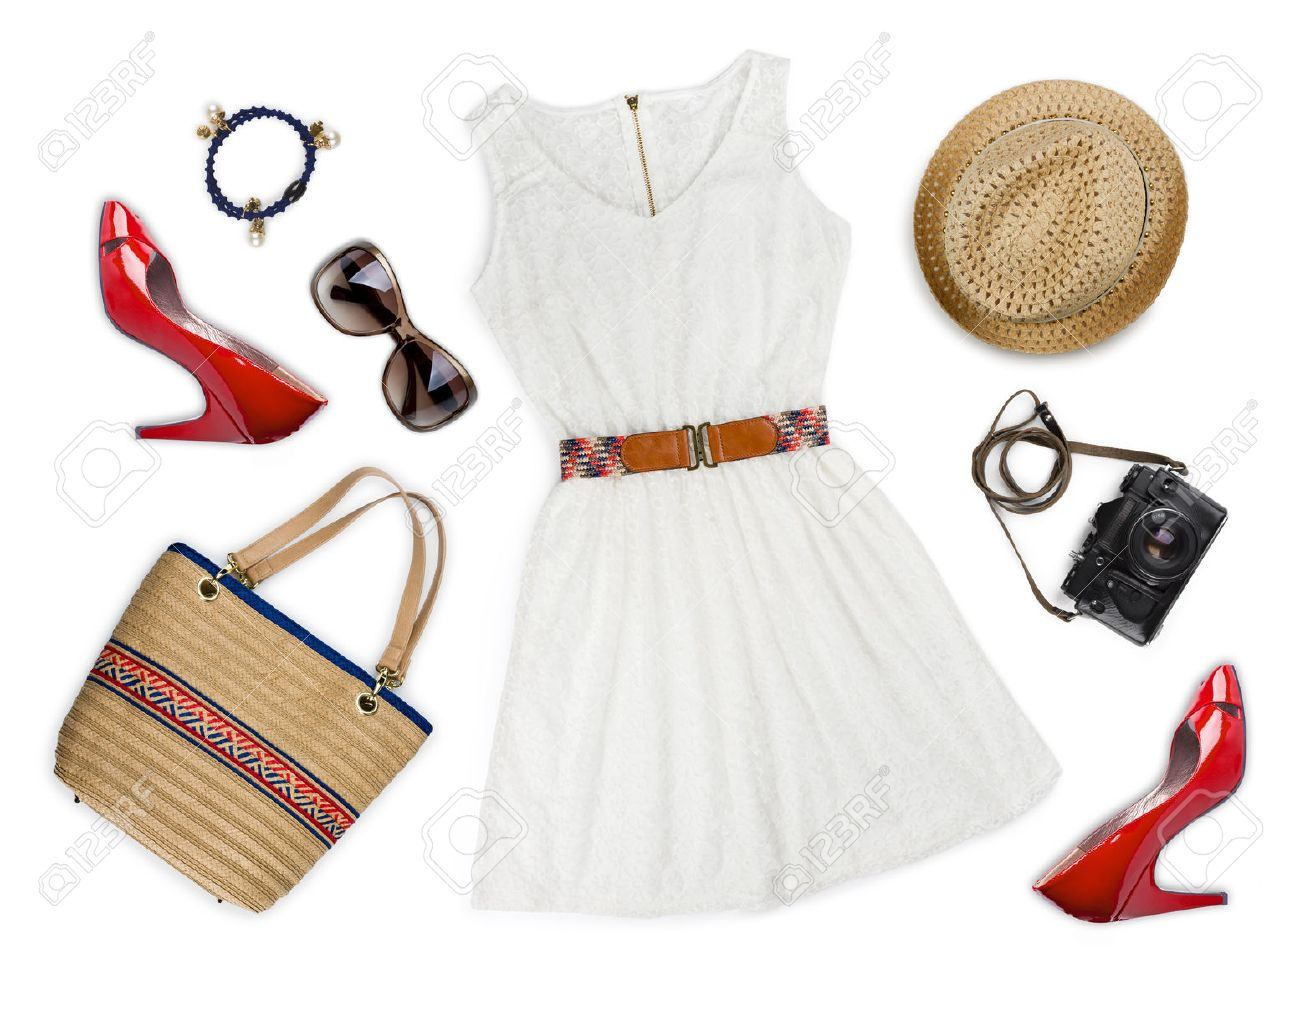 ee2fd667cf5 Collage of tourist clothing and accessories isolated on white Stock Photo -  39538724